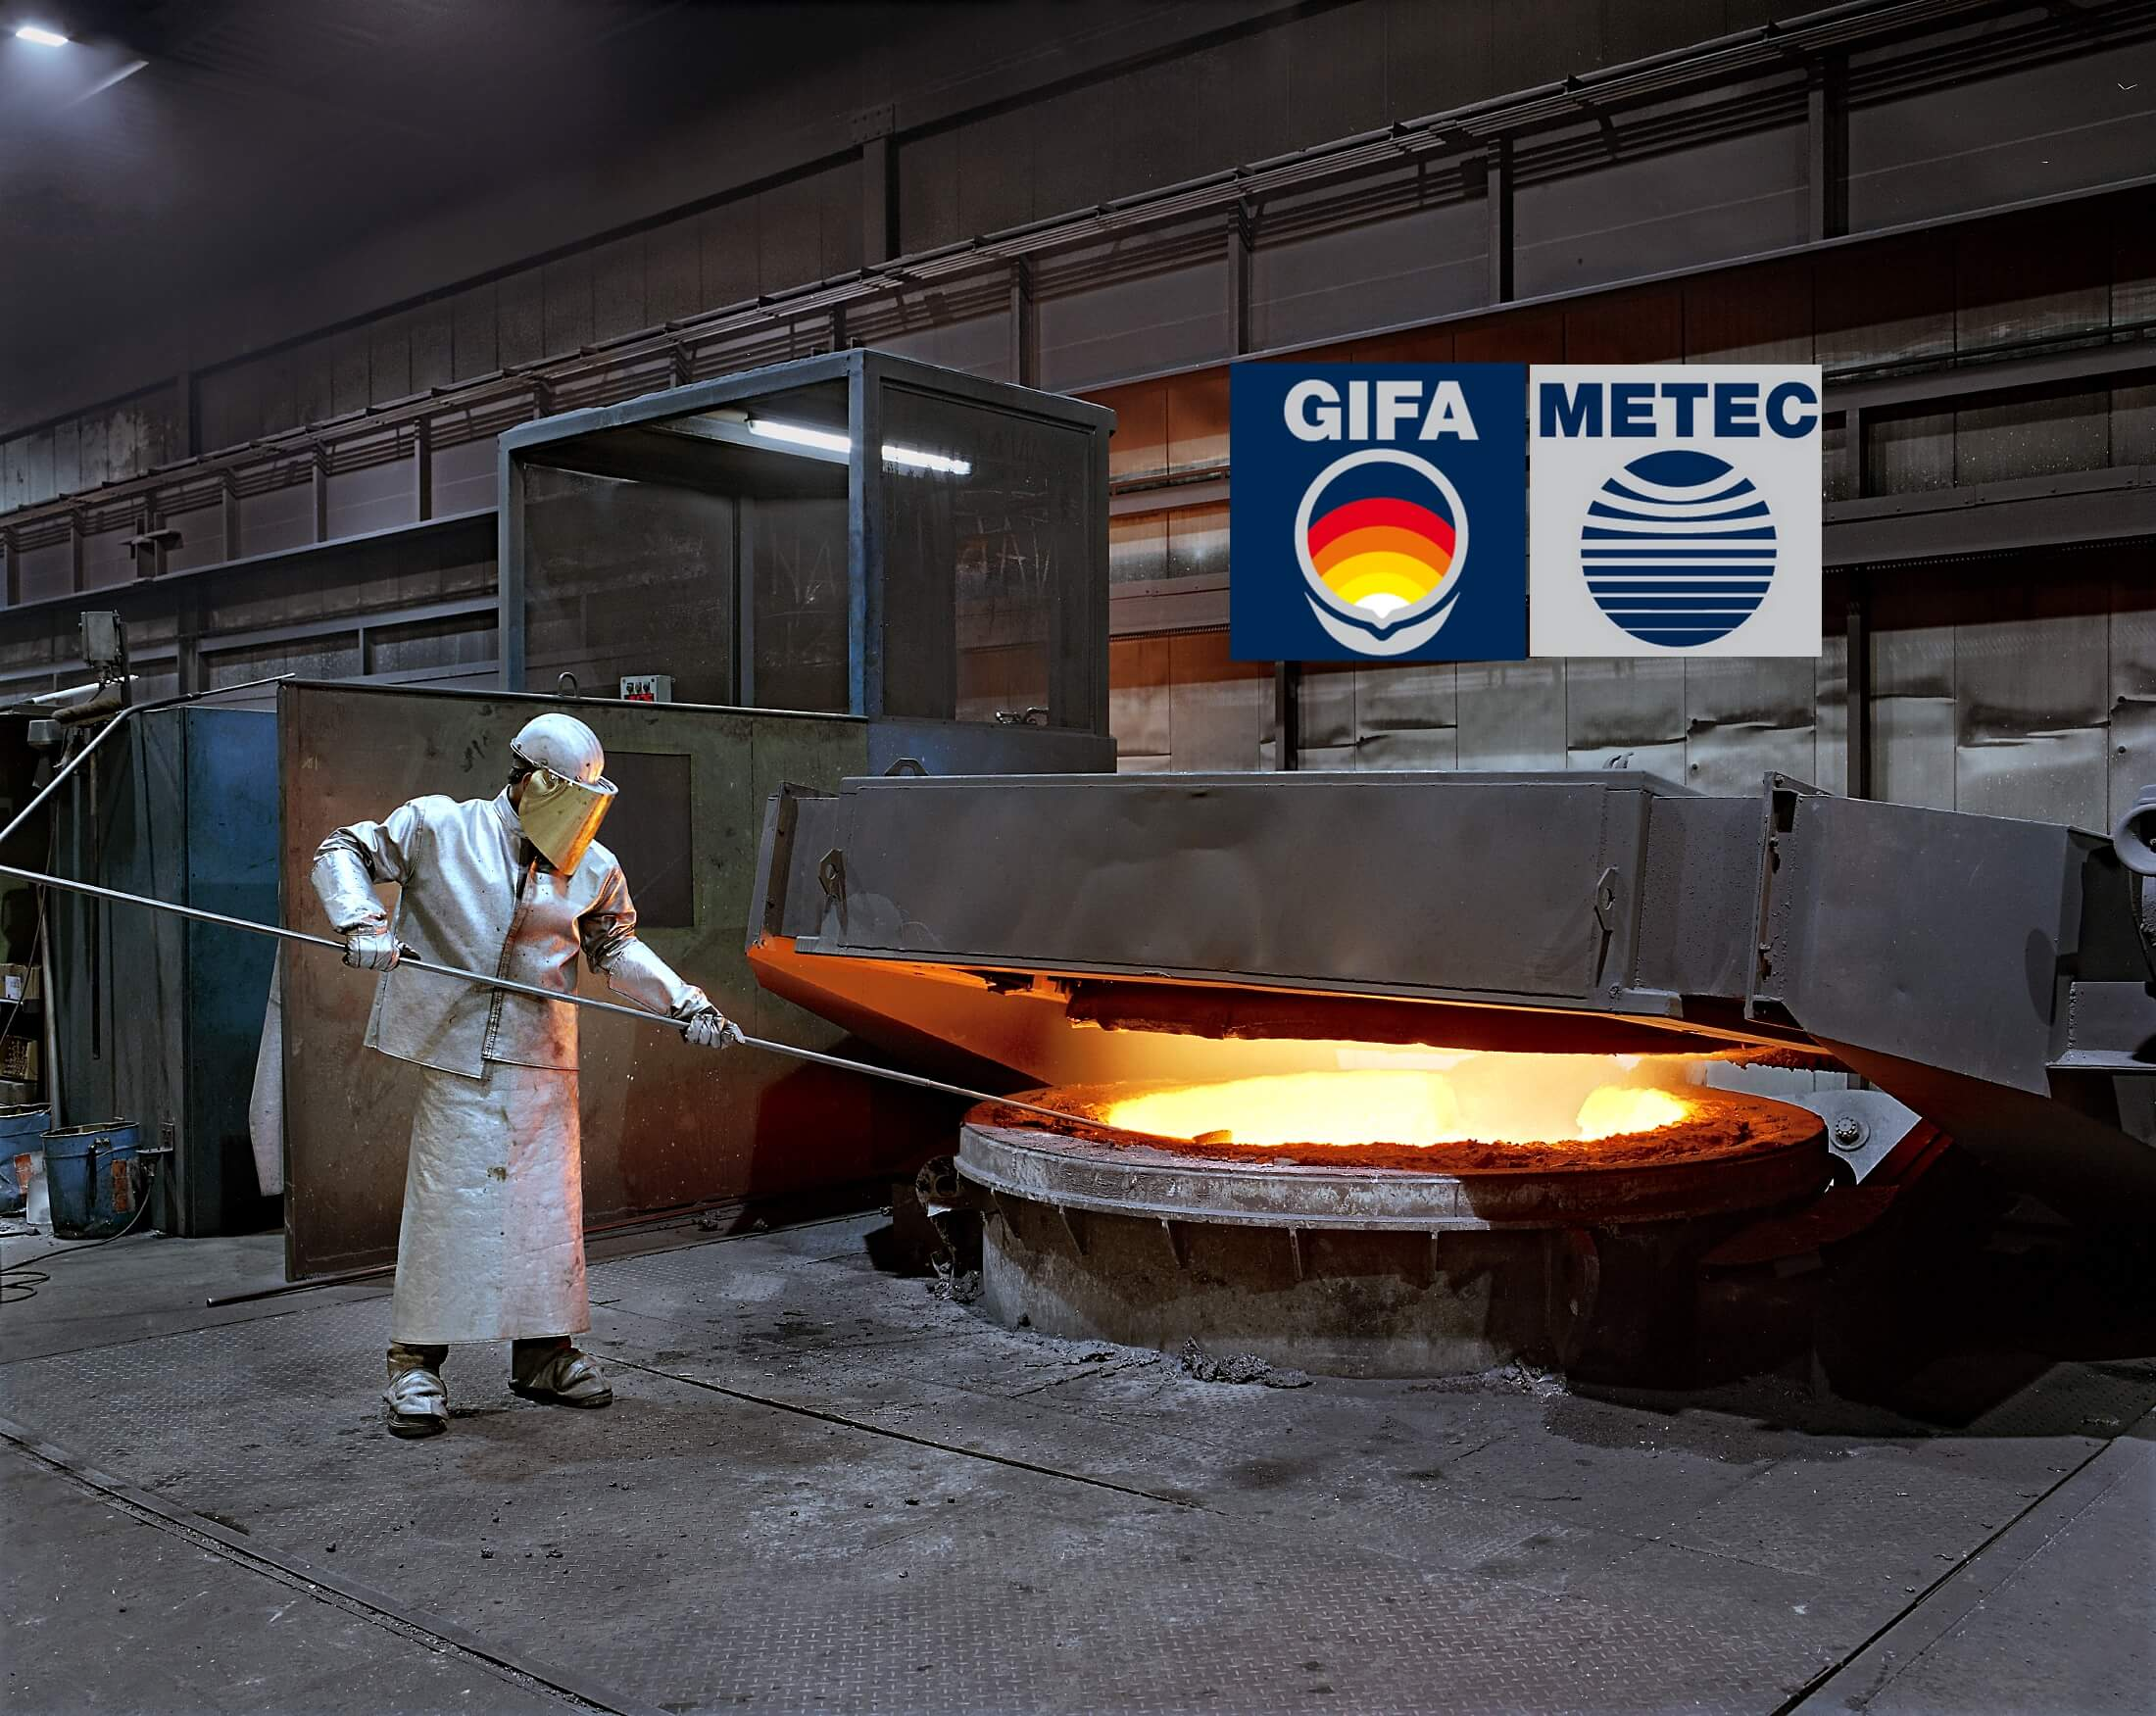 Calderys Foundry Solutions will be at GIFA & METEC 2019 in Germany